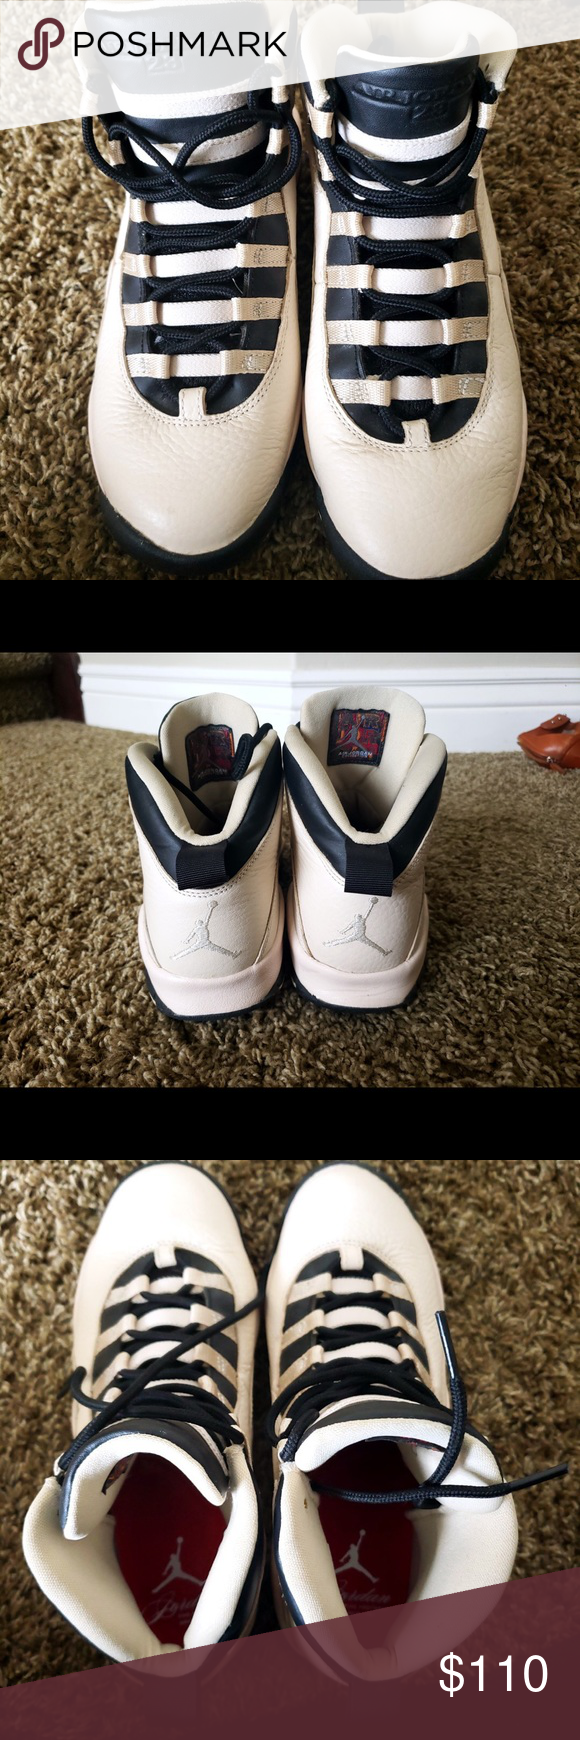 0a6ab65b5eb Air Jordan jasmine Archive Worn once and in perfect condition